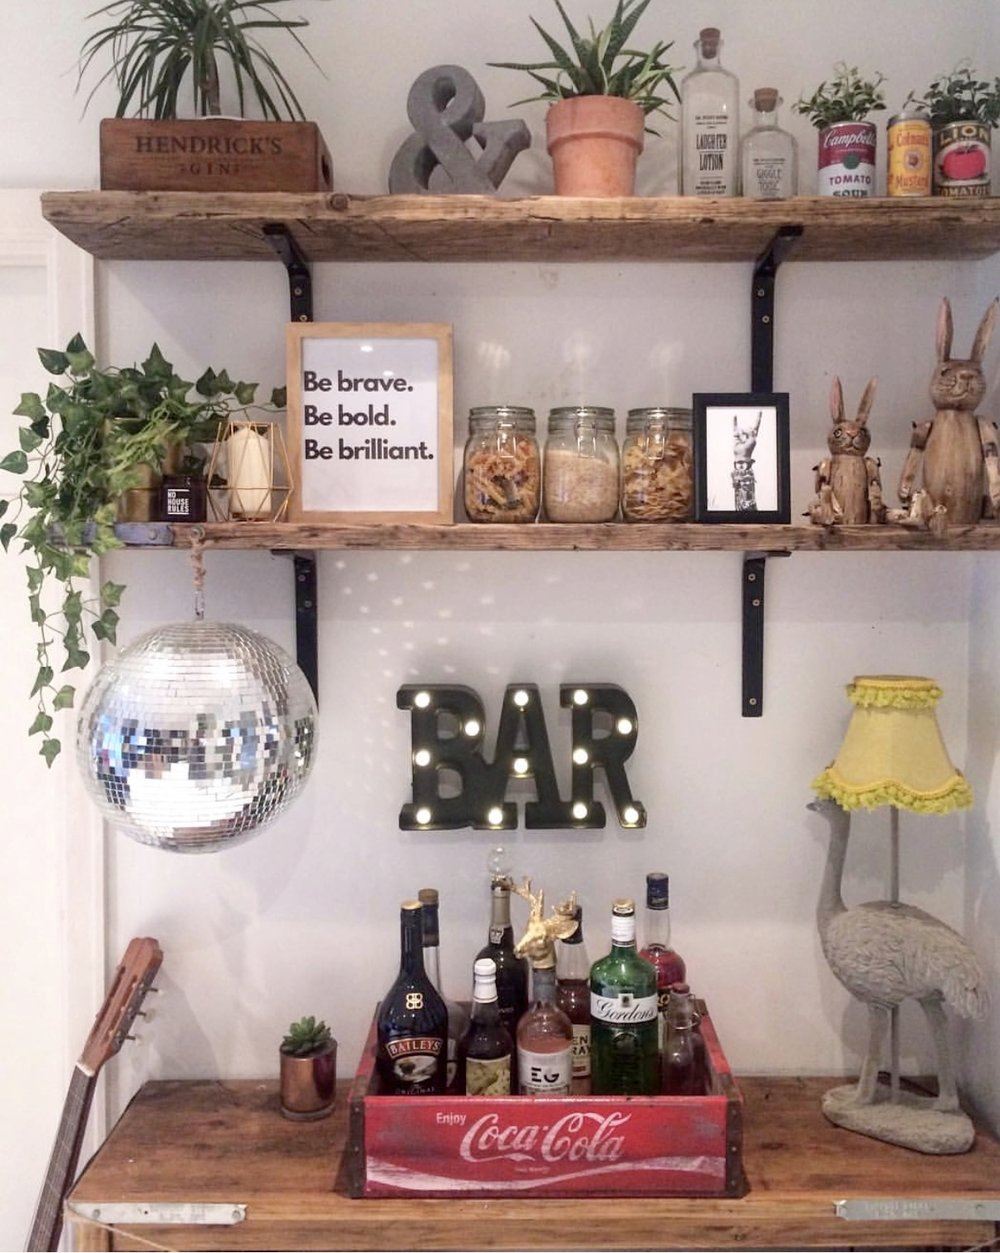 Angie has utilised a crate to make a lovely little bar area in her kitchen ......The addition of the glitter ball, bar sign and fabulously quirky emu lamp show that even in the smallest of spaces a cool home bar is achieveable!     @loves_leeds_homes